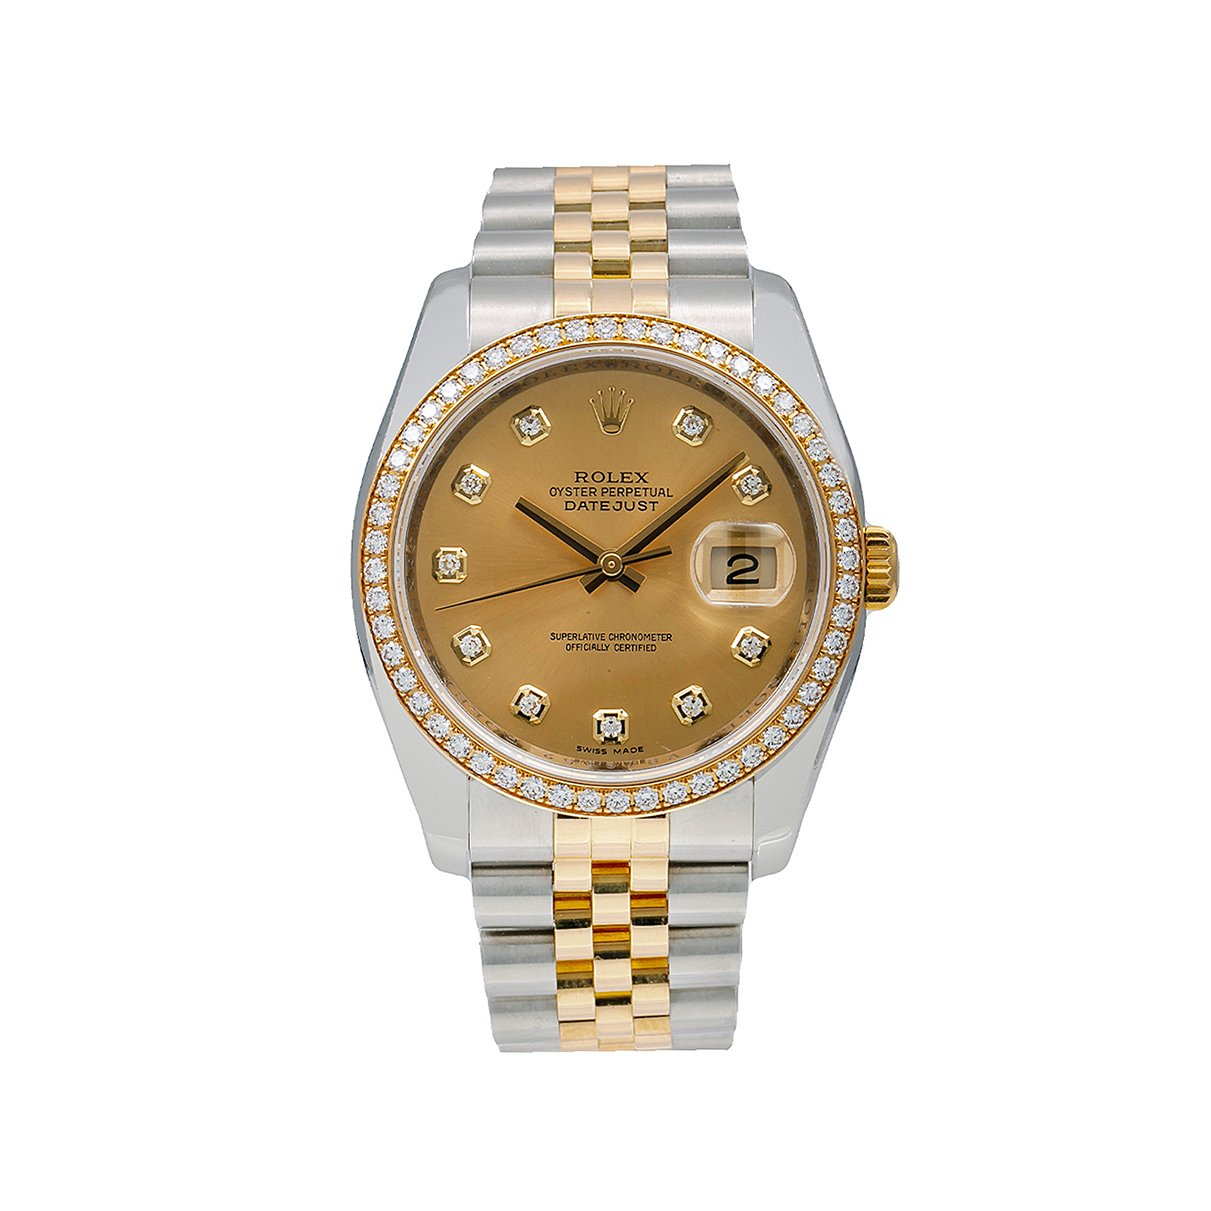 Rolex Datejust Diamond Watch, 116243 36mm, FACTORY Champagne Diamond Dial With Two Tone Jubilee Bracelet